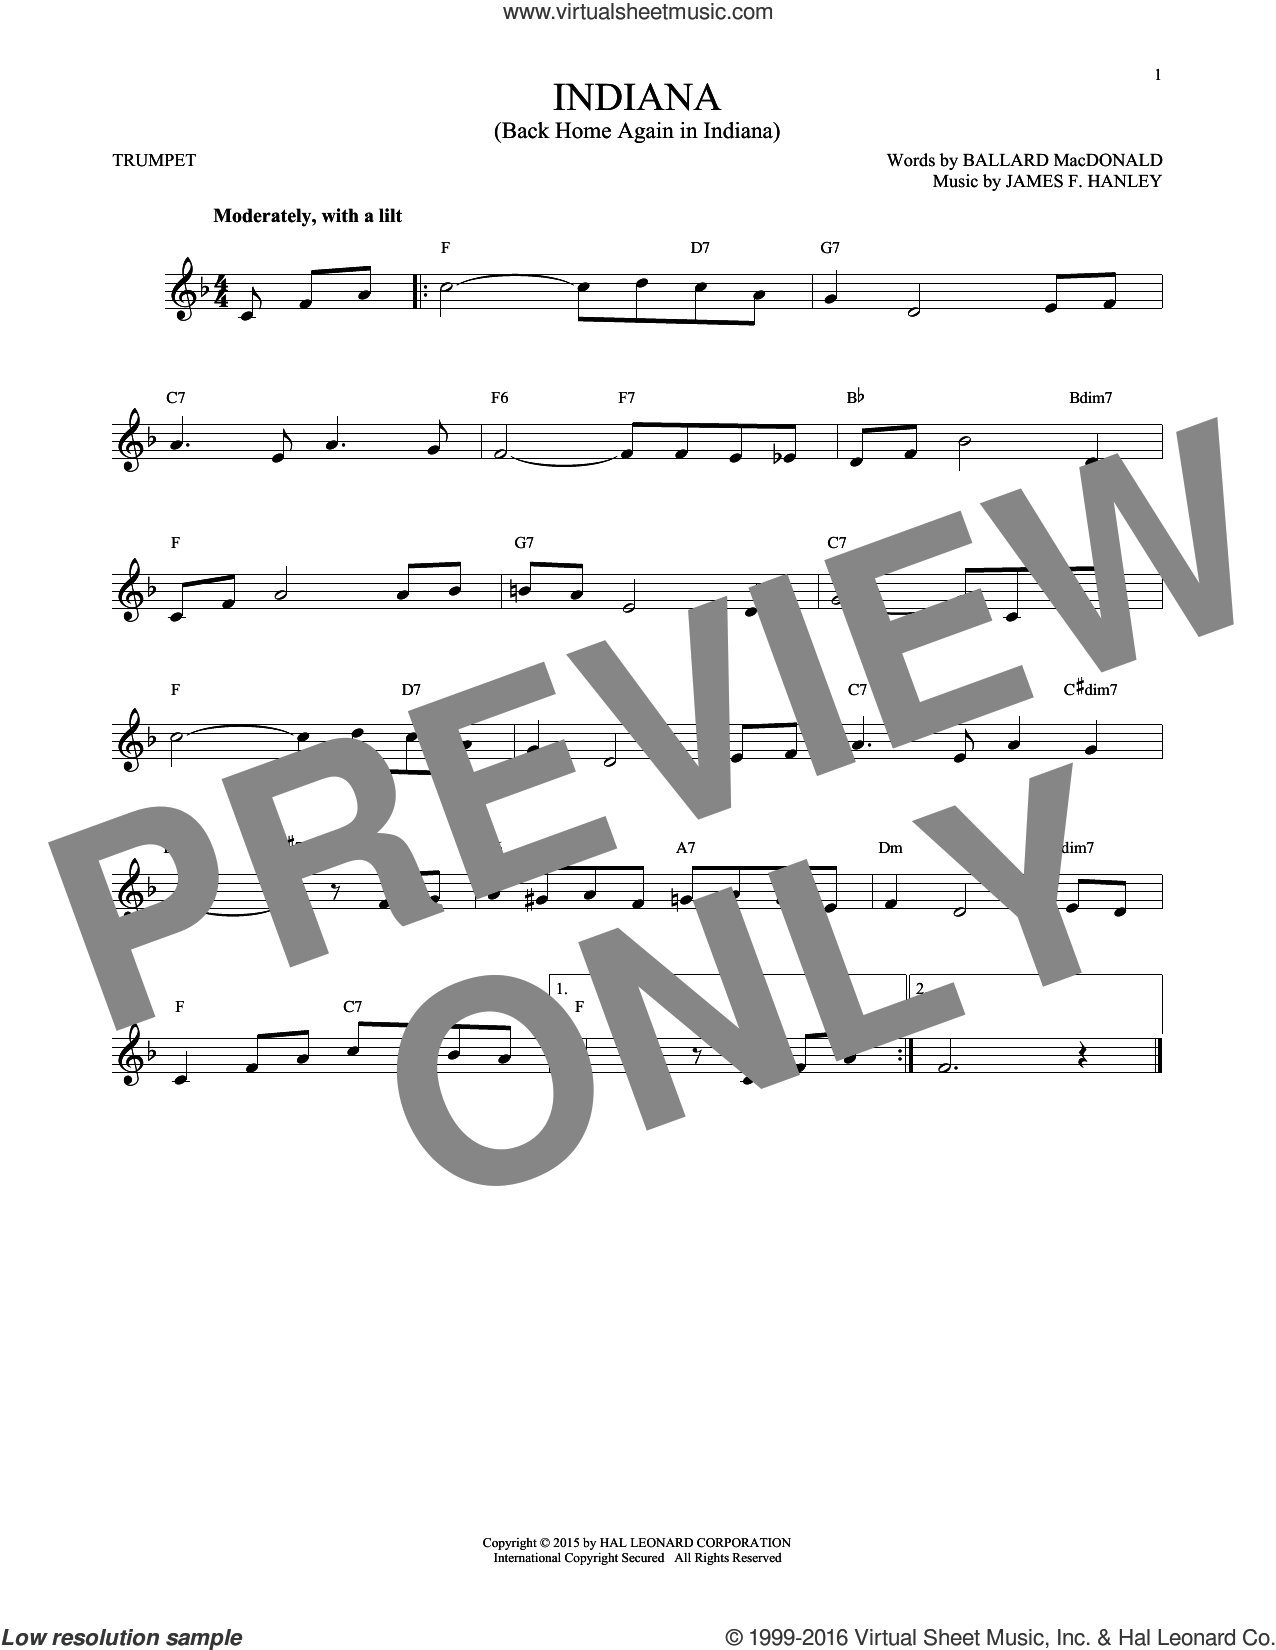 Indiana (Back Home Again In Indiana) sheet music for trumpet solo by Ballard MacDonald and James Hanley, intermediate skill level